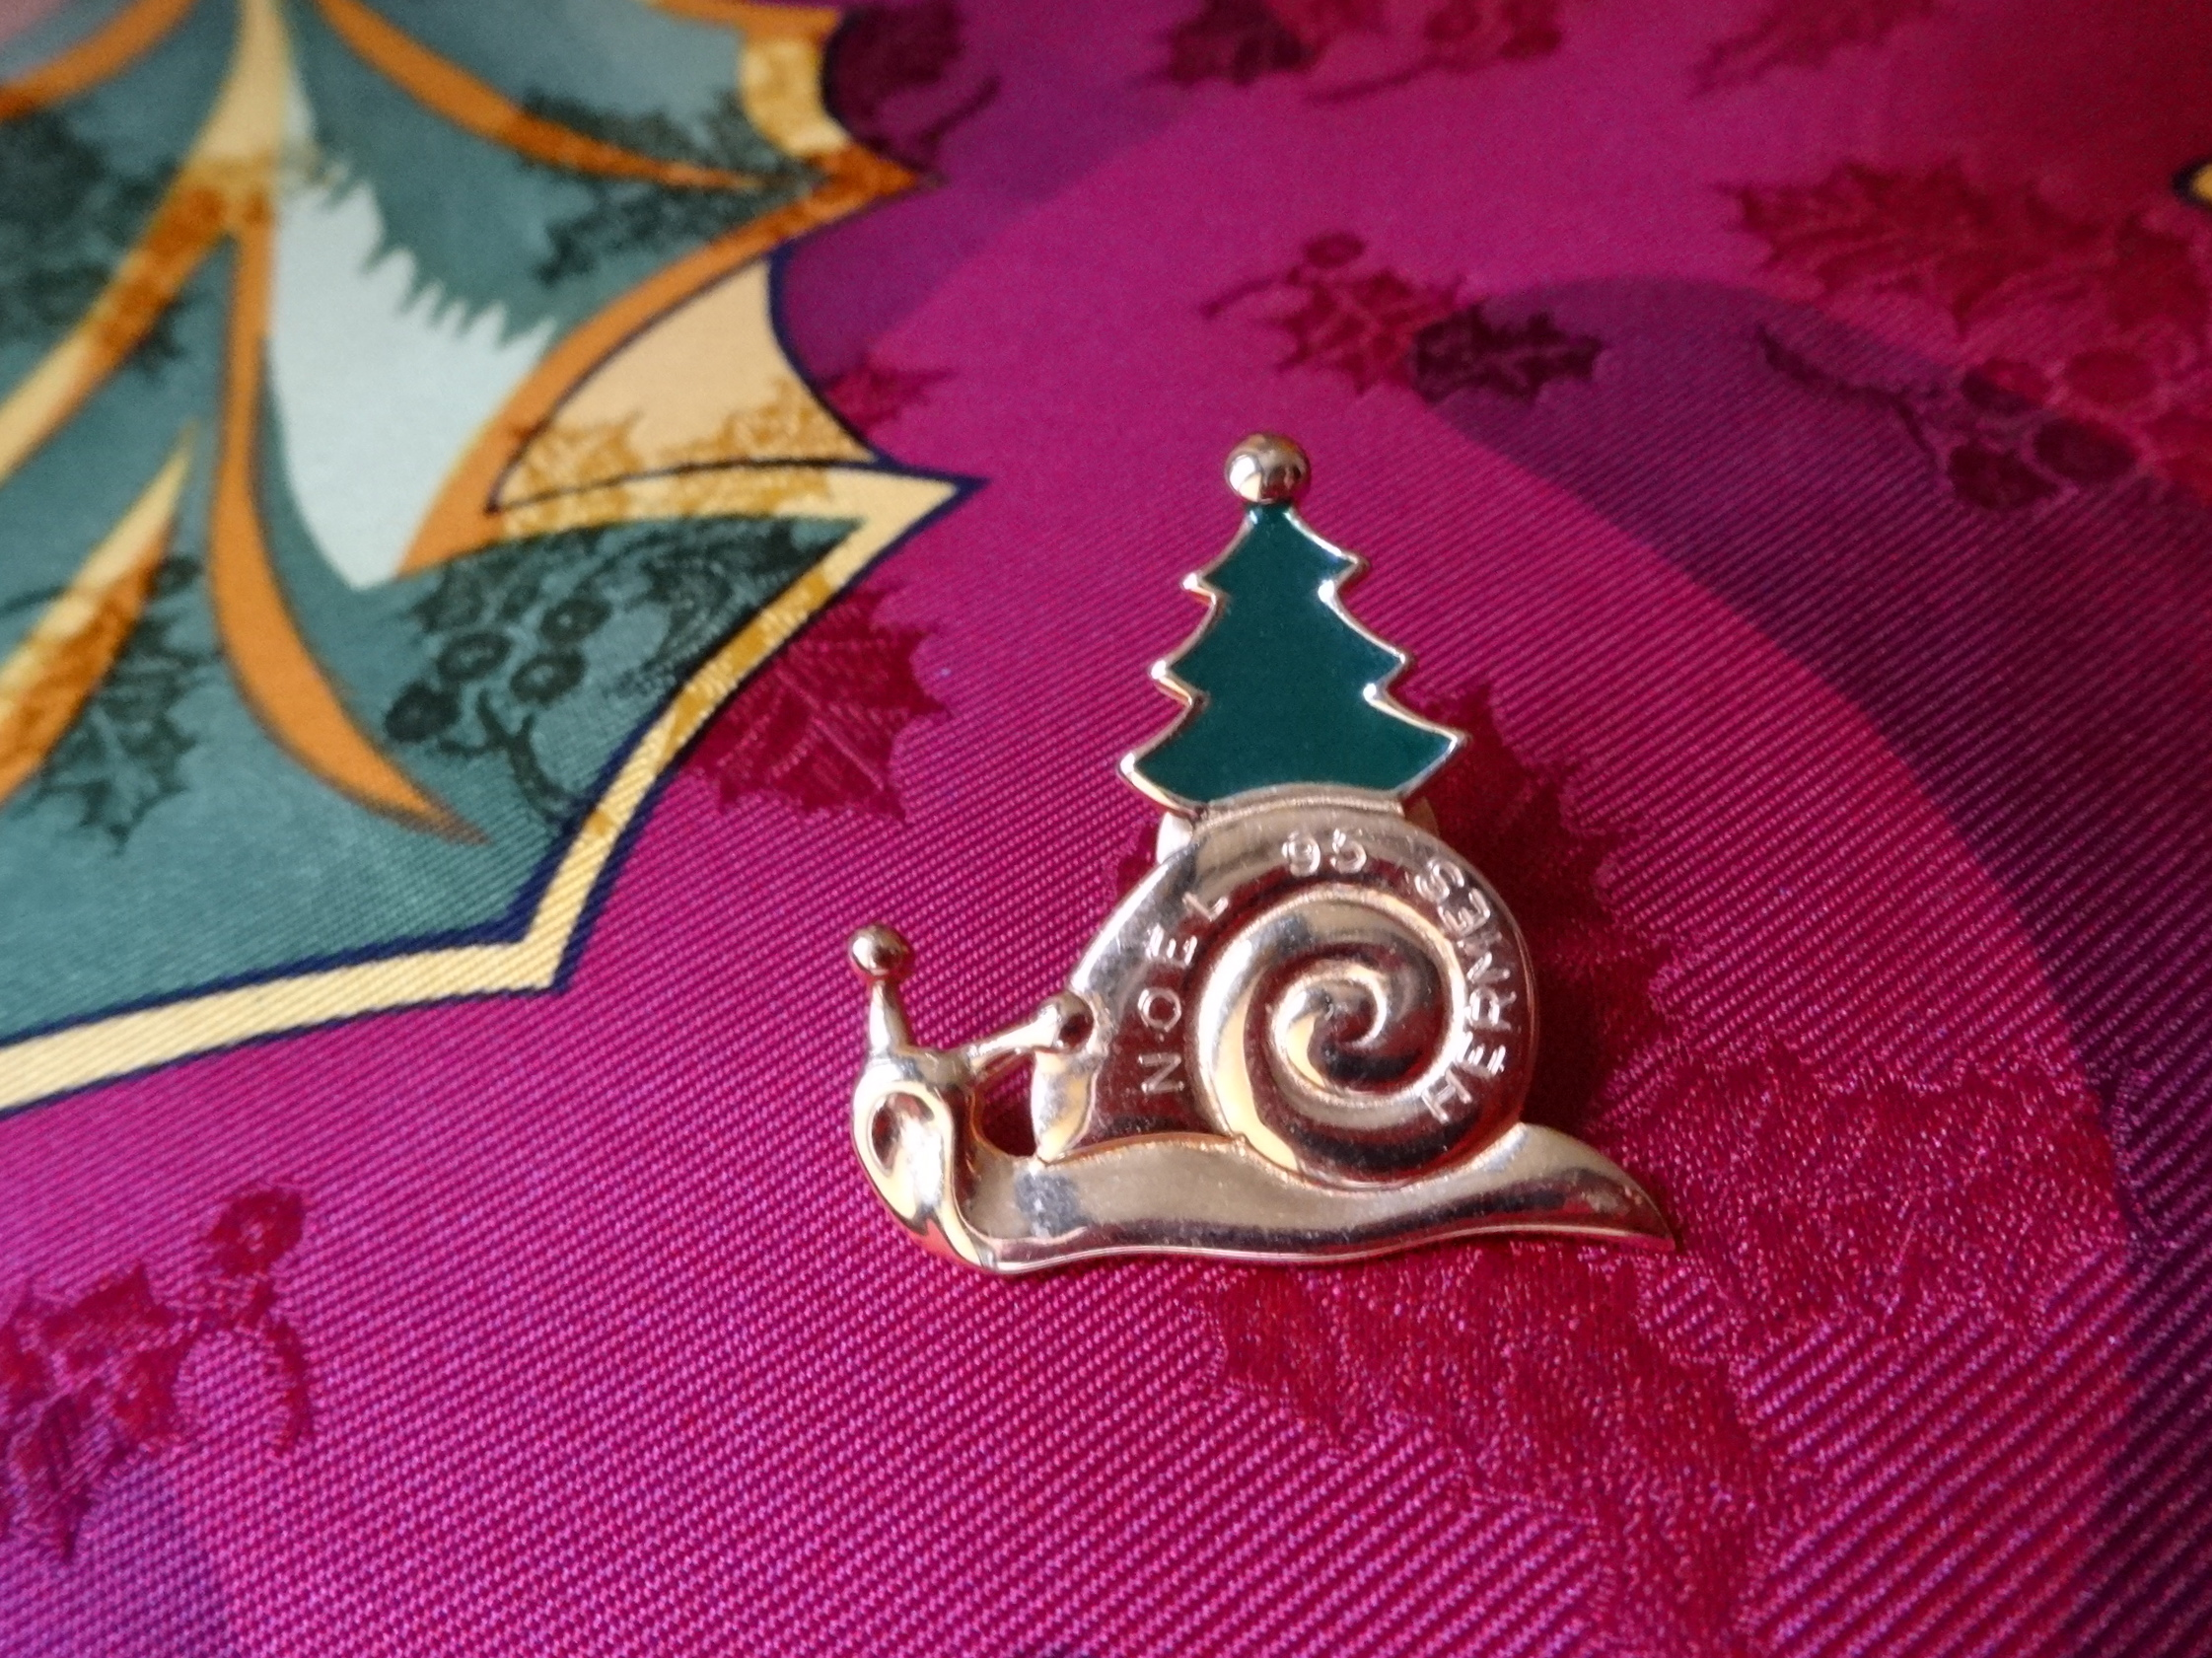 Hermès Christmas pin - l'Annee de la Route 1995/On the Road Again